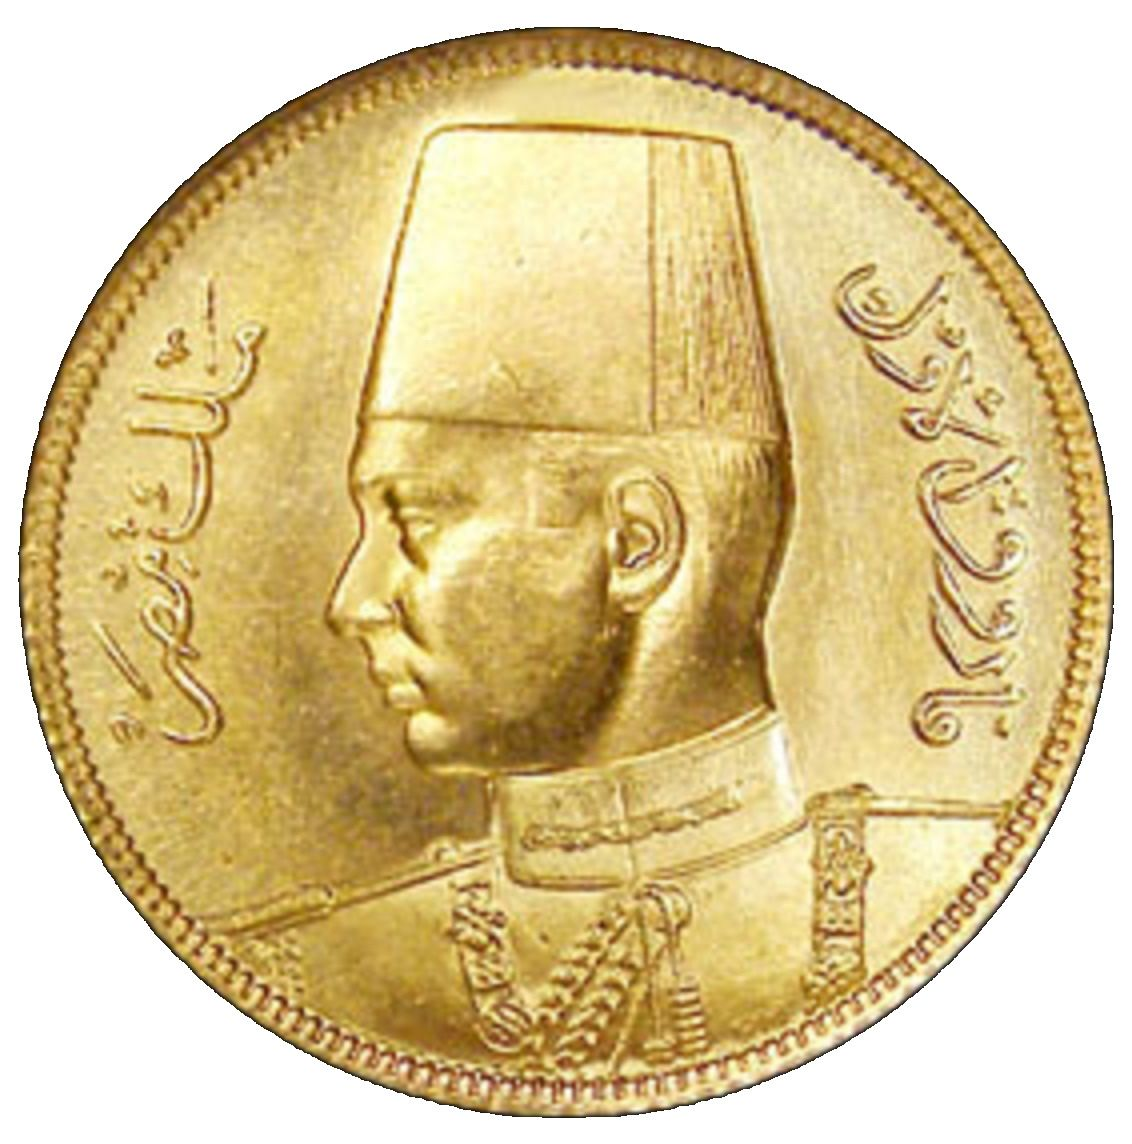 Old Egyptian Coin Historical Coins